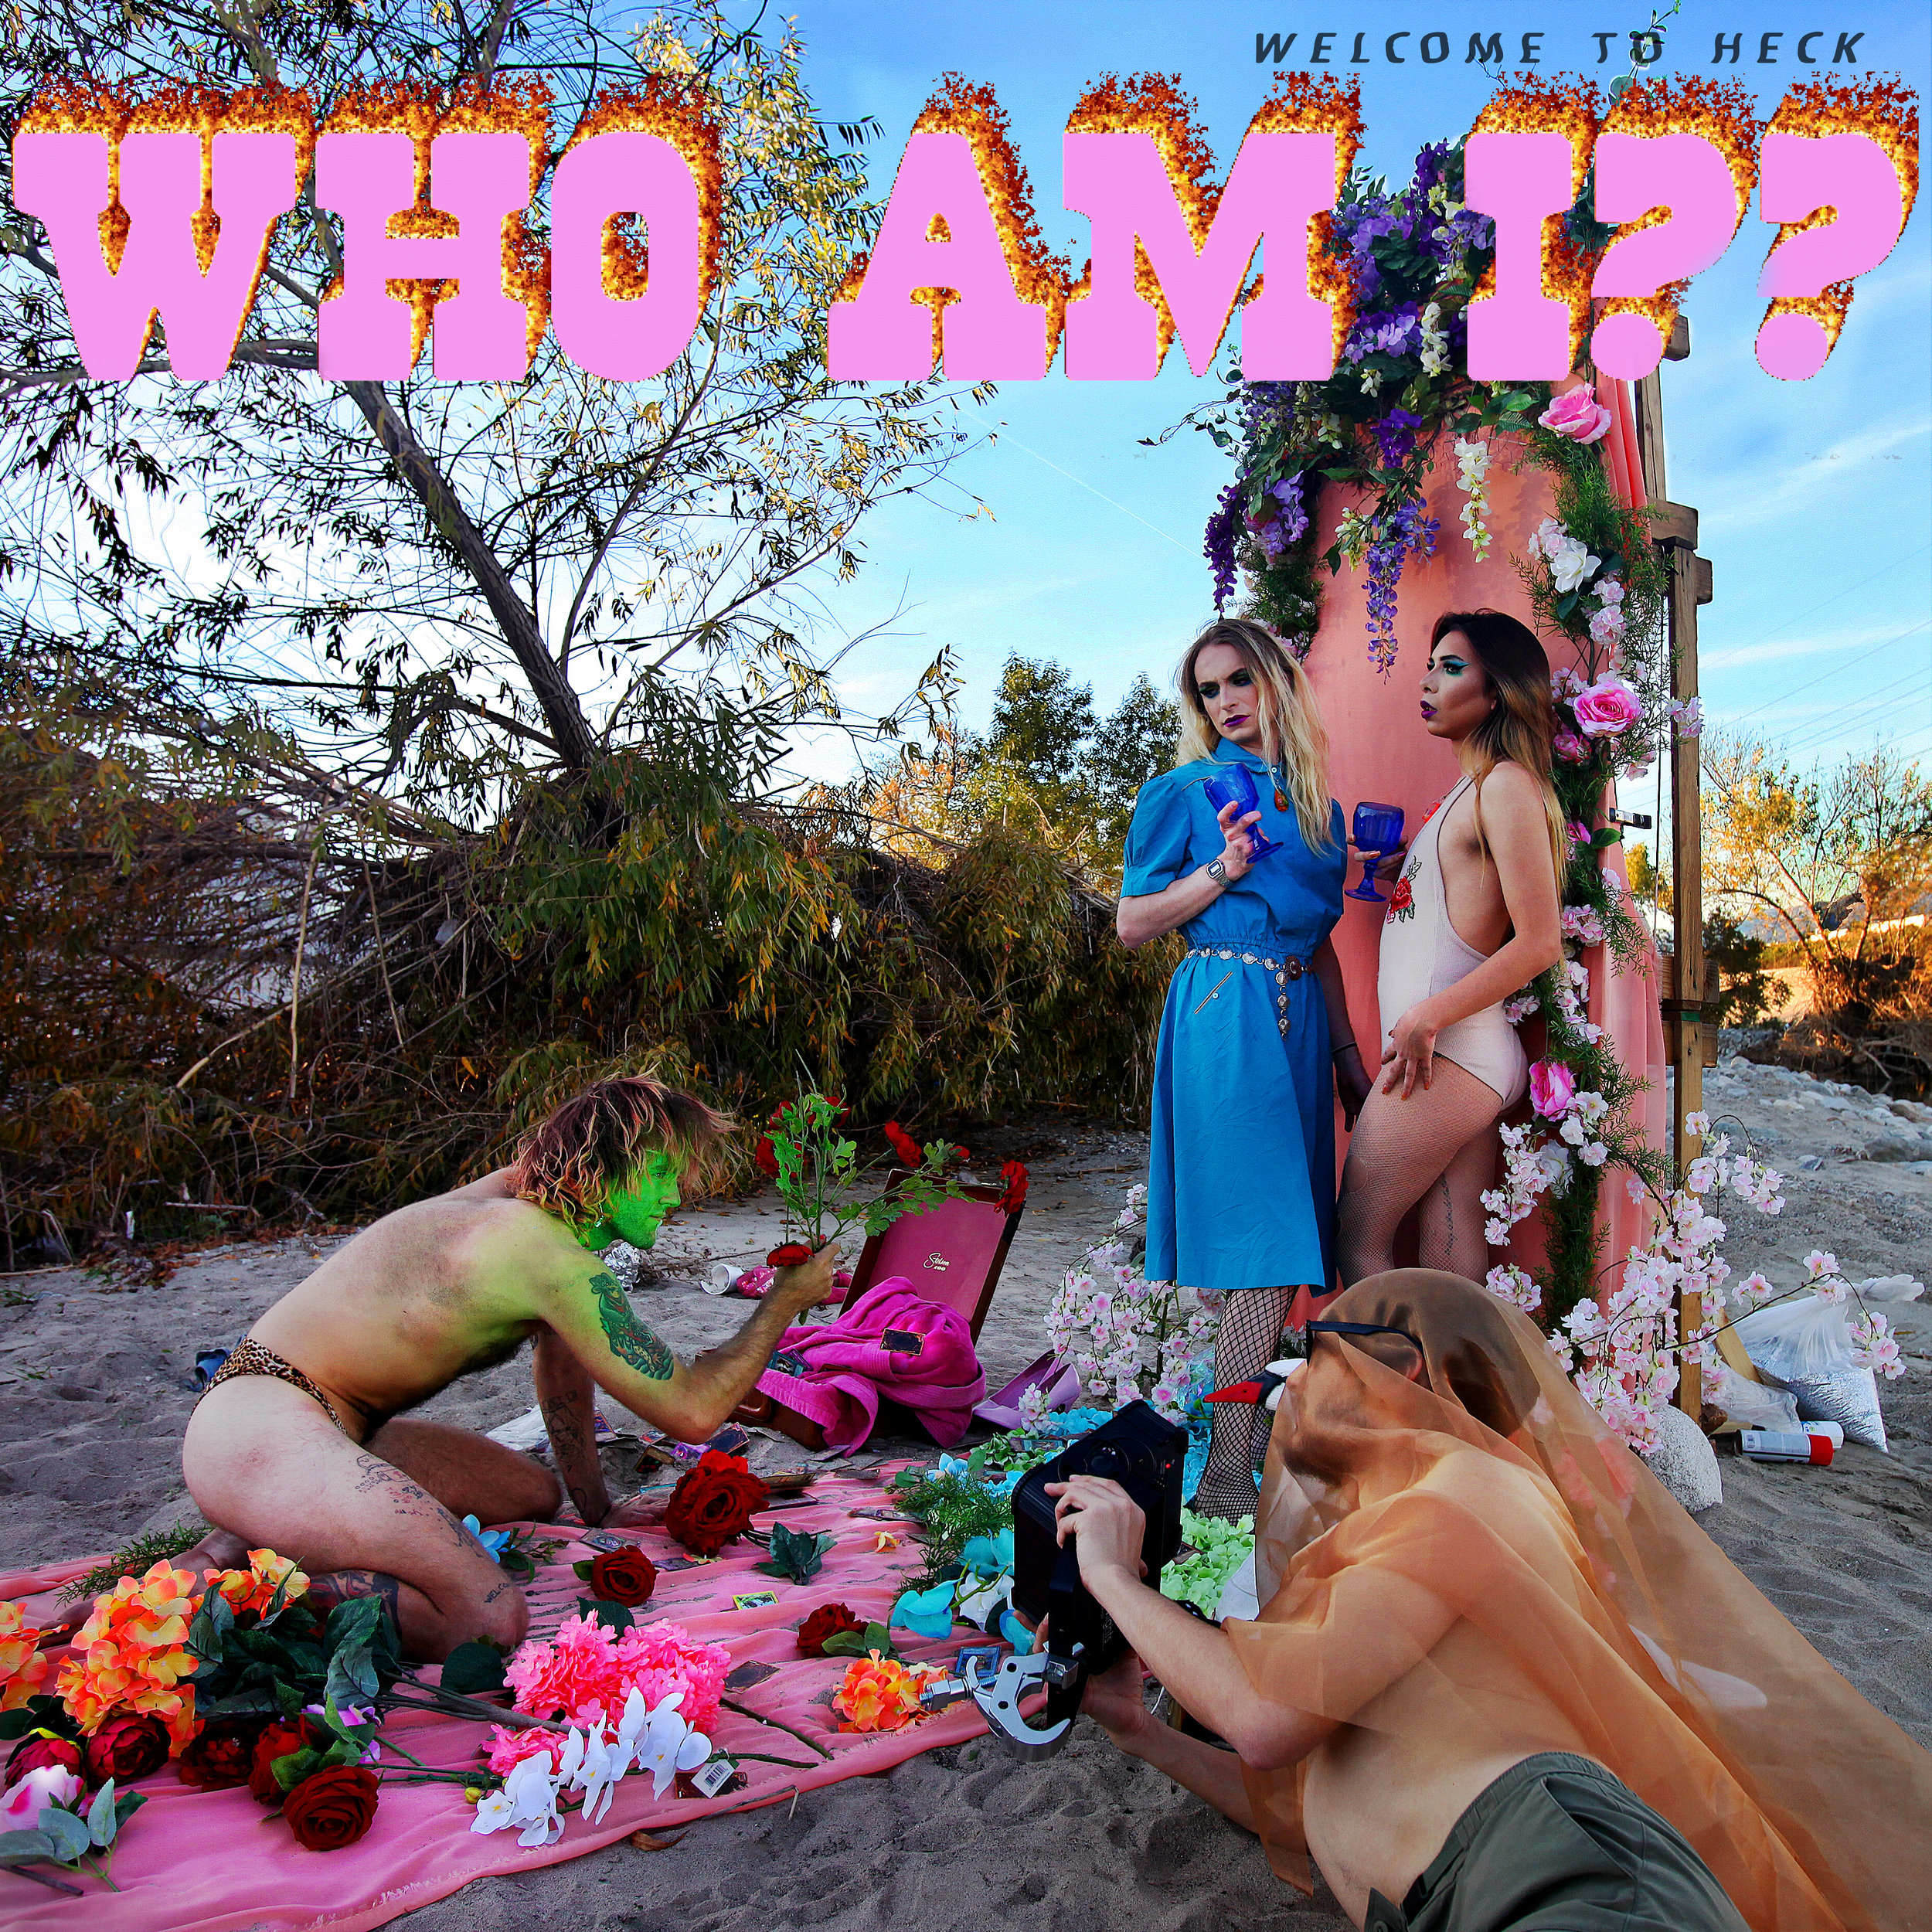 """ WHO AM I?? "" is the cri de cœur of HECK. - Composed between 2016-2018, the third studio album by Los Angeles-based WELCOME TO HECK is a romantic incantation from dark night of the soul. WHO AM I?? fuses its aesthetic from the lexicon of early rock & roll, 1970s No-Wave Punk, textural avant-garde, and the wild prose of American Beat poets. HECK makes a statement of gender fluidity and protests materialism and decadence within the raw and rubbed-wrong confines of tape format recording.Available 4.27.19 to and from, of all and forevermore, the great streamer platformants and radiophite sites today and NOW! for your perennial entertainment."